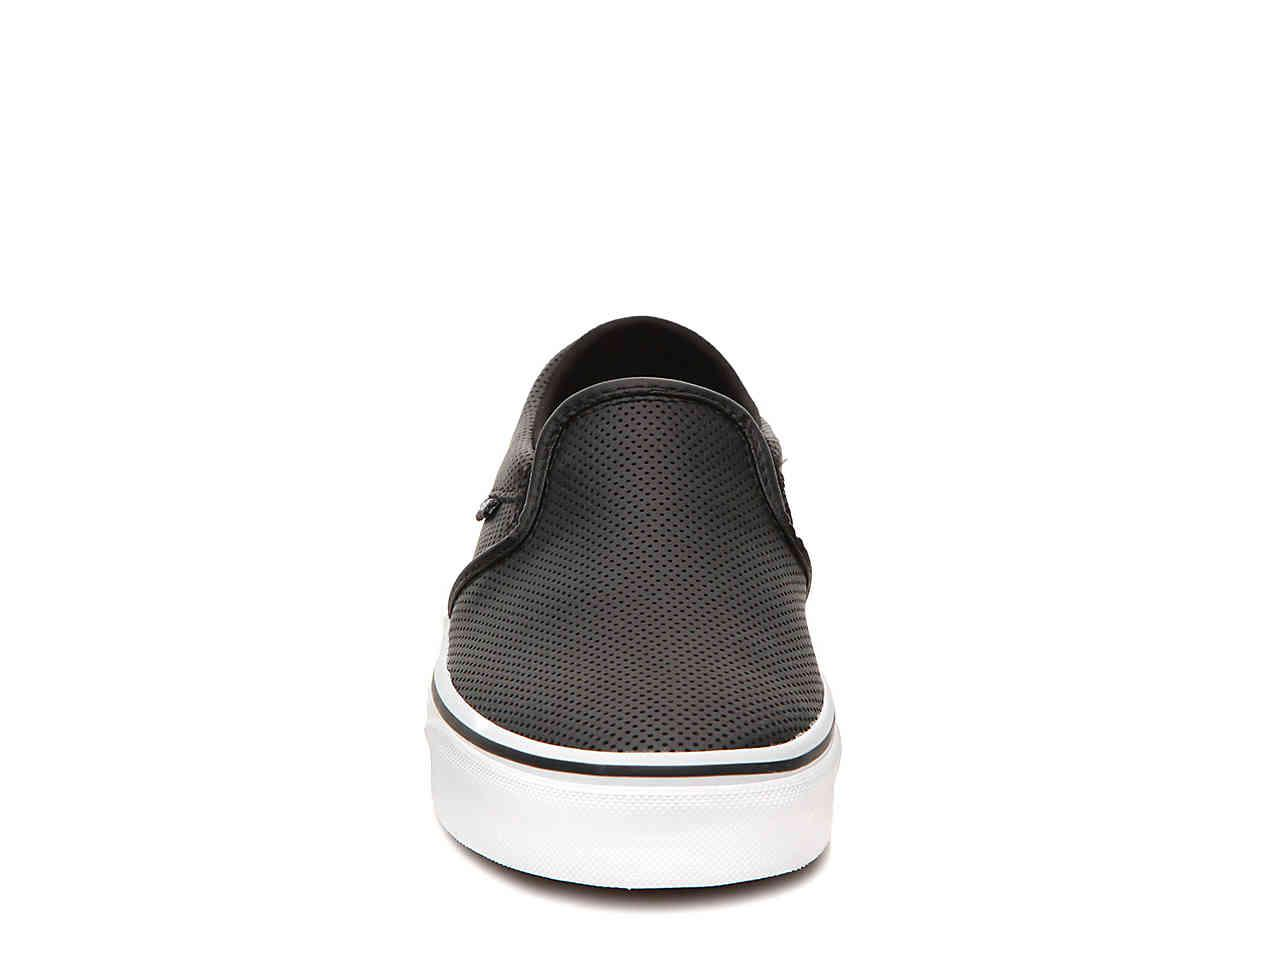 0ca05d02a32 Vans - Black Asher Perforated Slip-on Sneaker - Lyst. View fullscreen